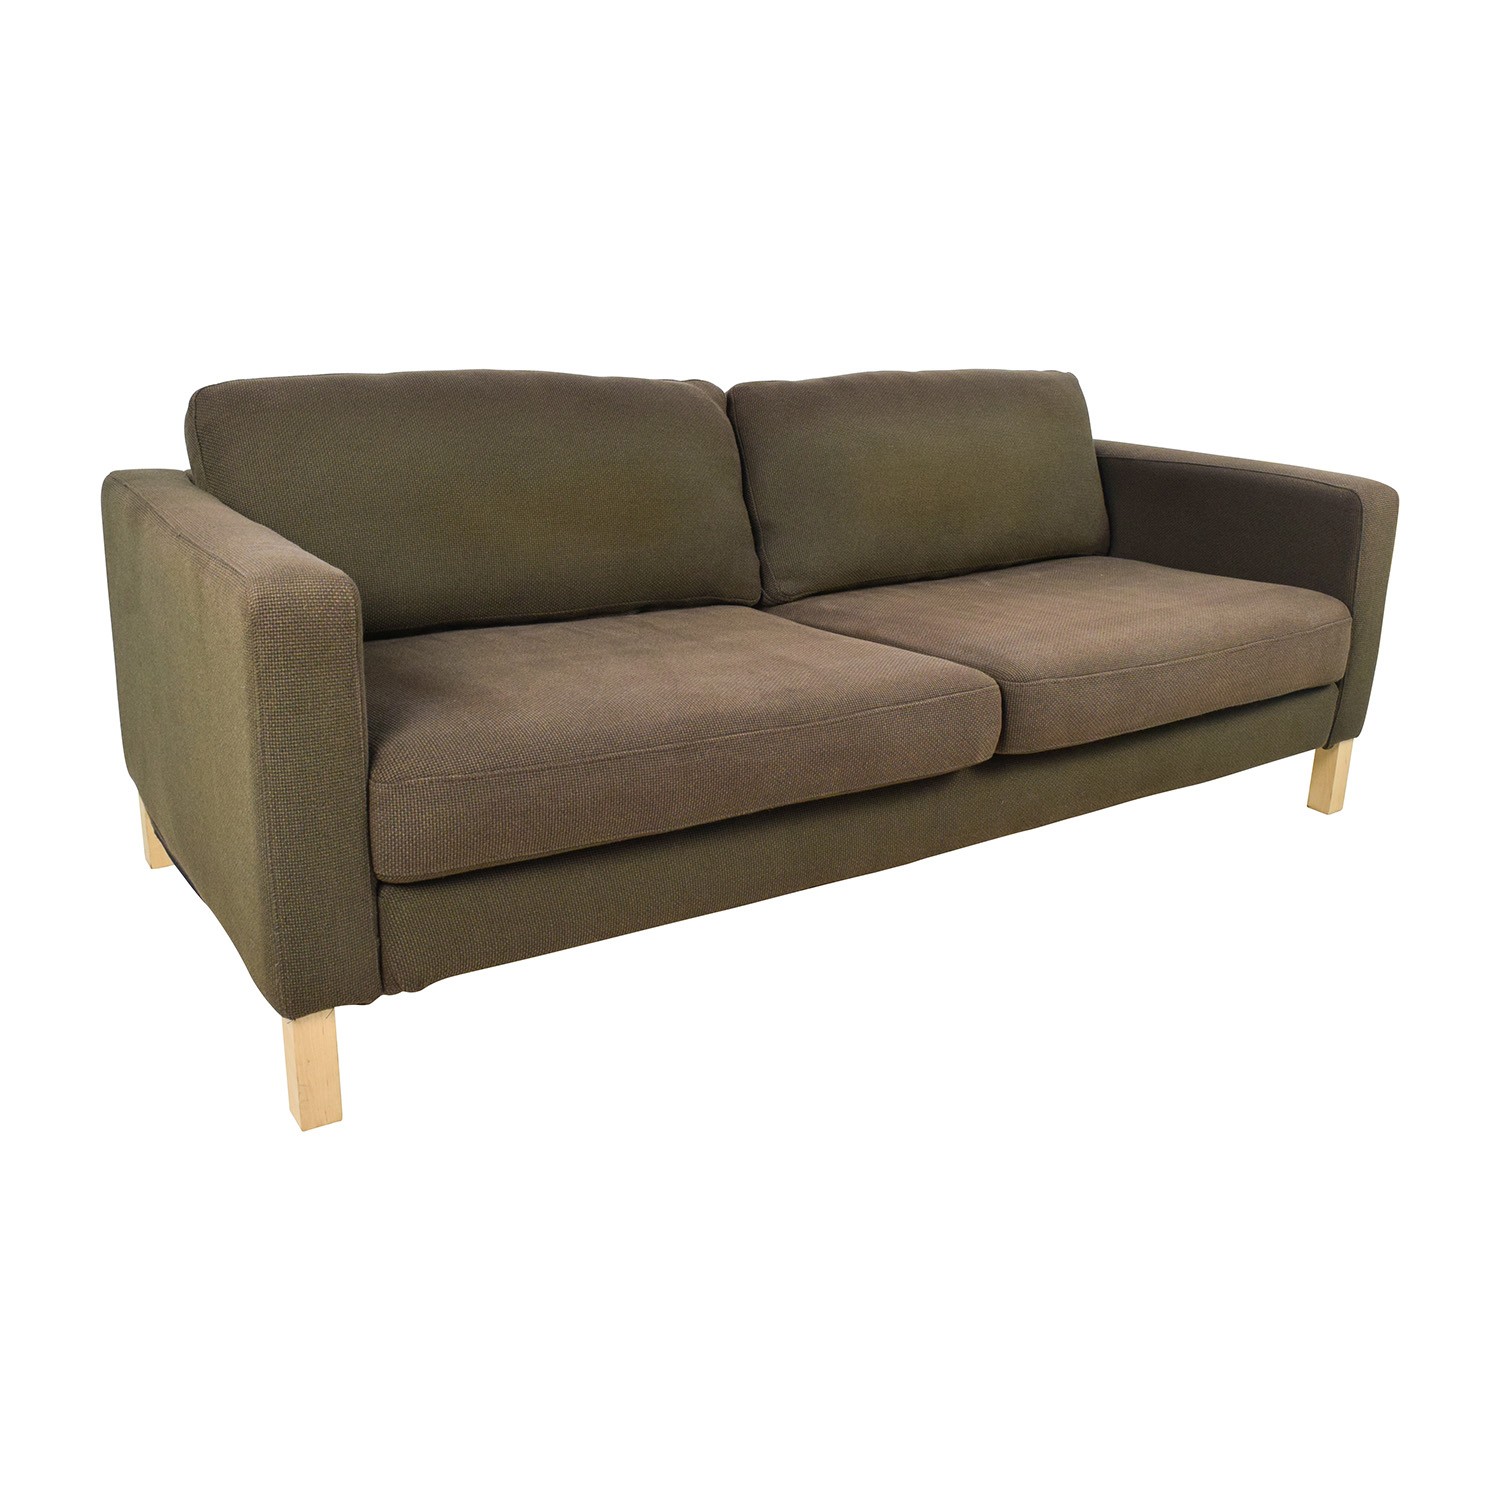 klein sofa best hw klein midcentury teak danish sofa image of with klein sofa good calvin. Black Bedroom Furniture Sets. Home Design Ideas